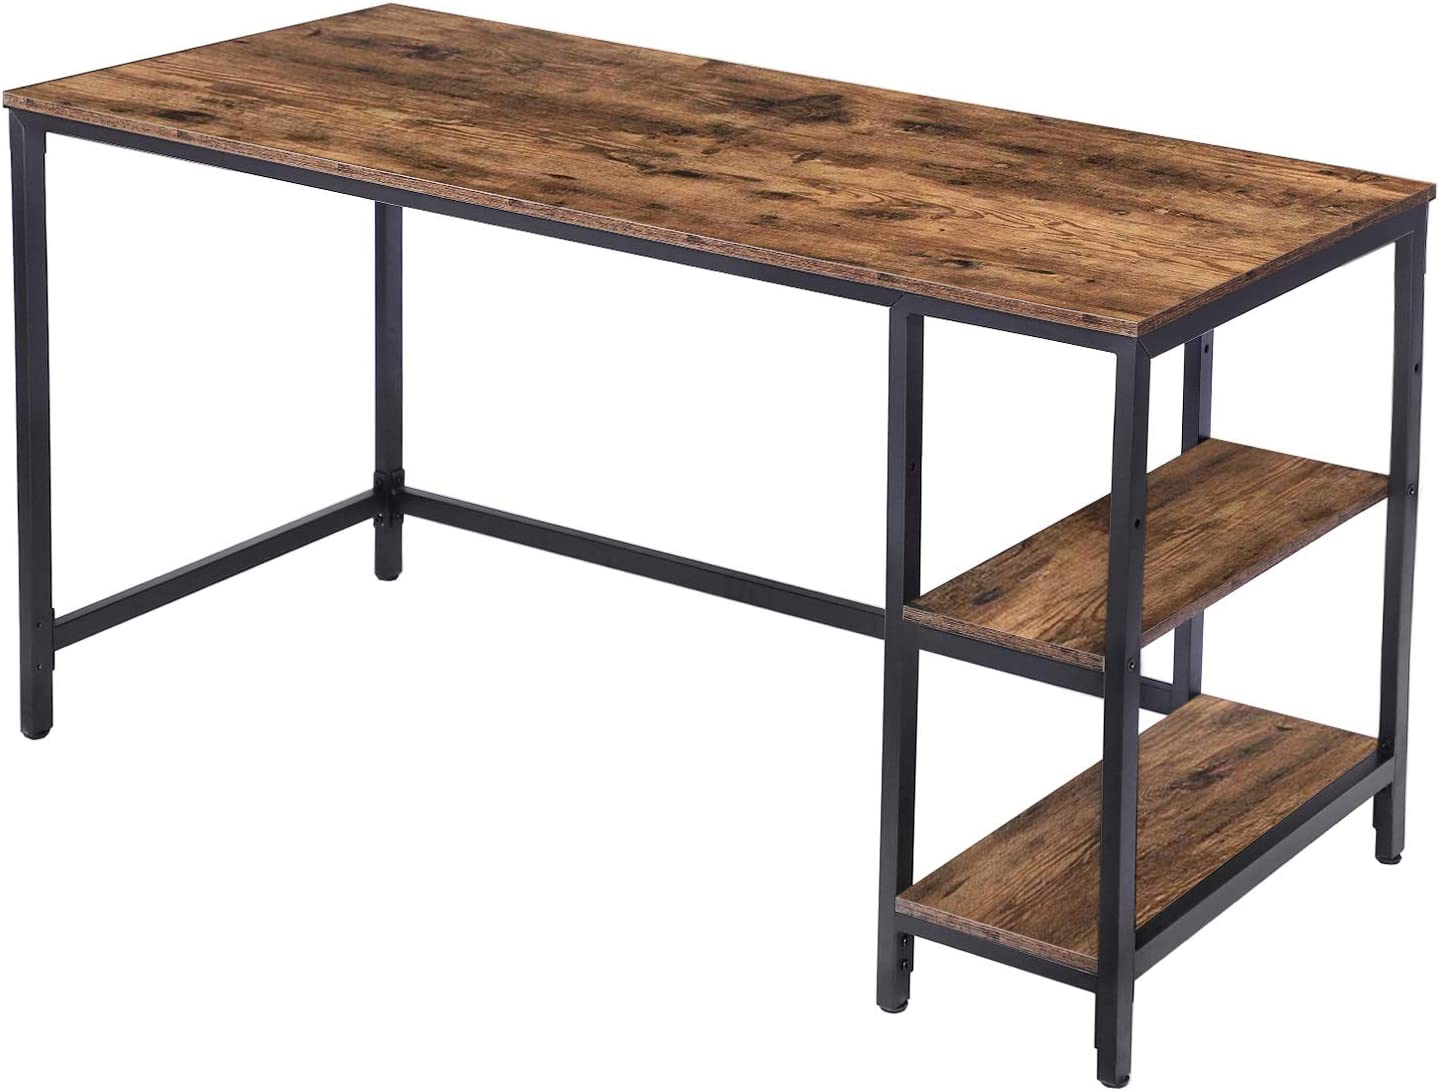 HOOBRO Computer Desk, Industrial Writing Desk with 2 Storage Shelves on Left or Right, 55 Inch Office Study Desk for Laptops, Sturdy Metal Frame, Easy to Assemble, Rustic Brown BF60DN01